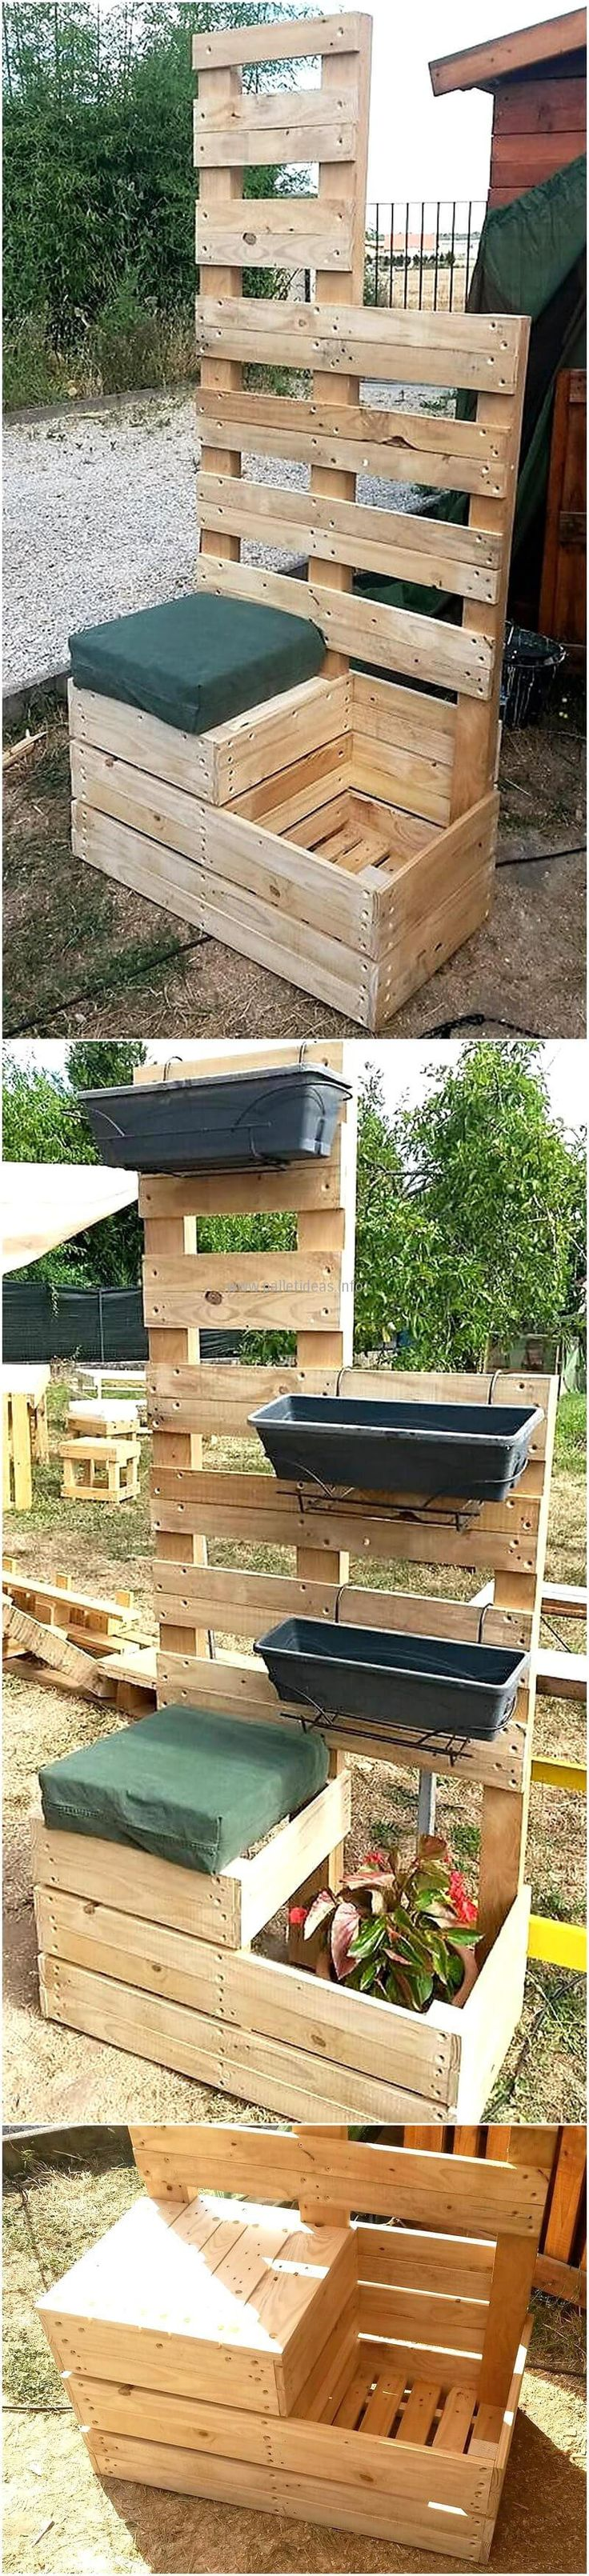 Reuse Wood Pallets To Create Such Amazing